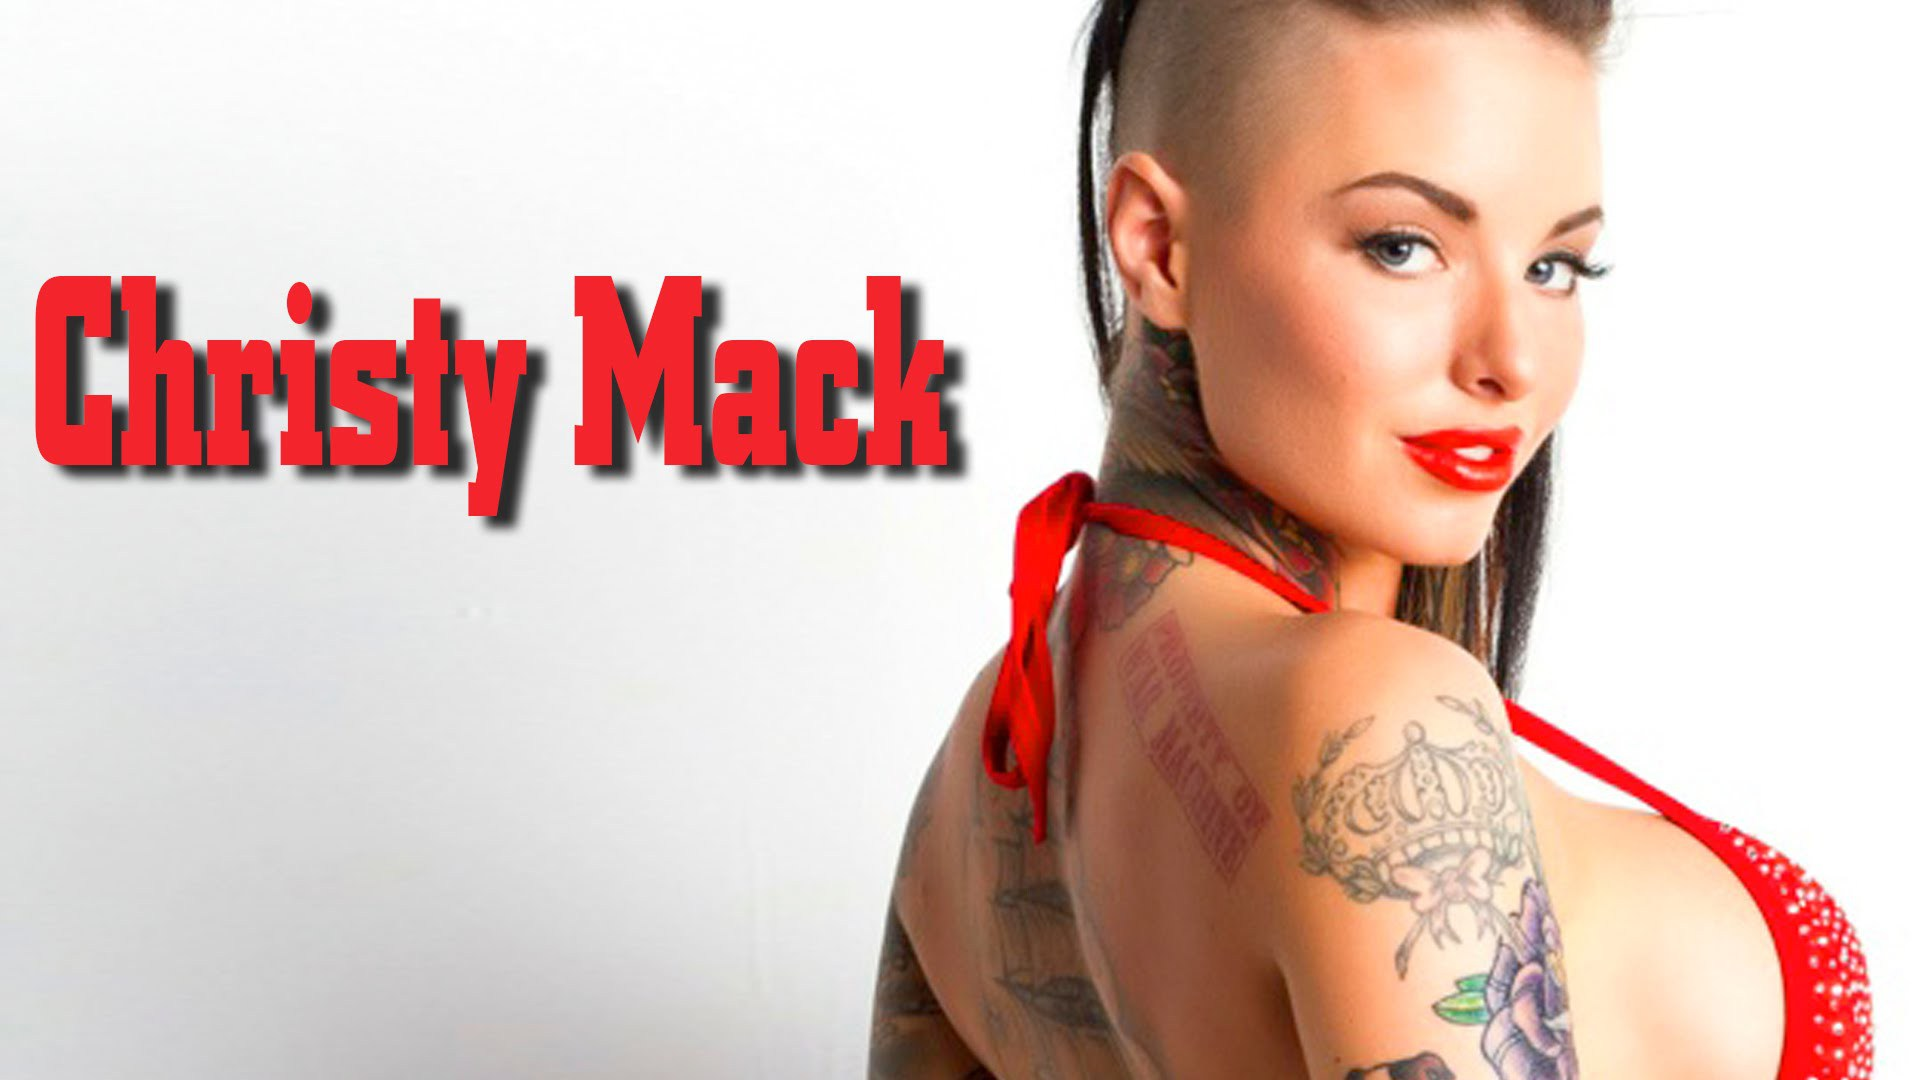 christy mack tube